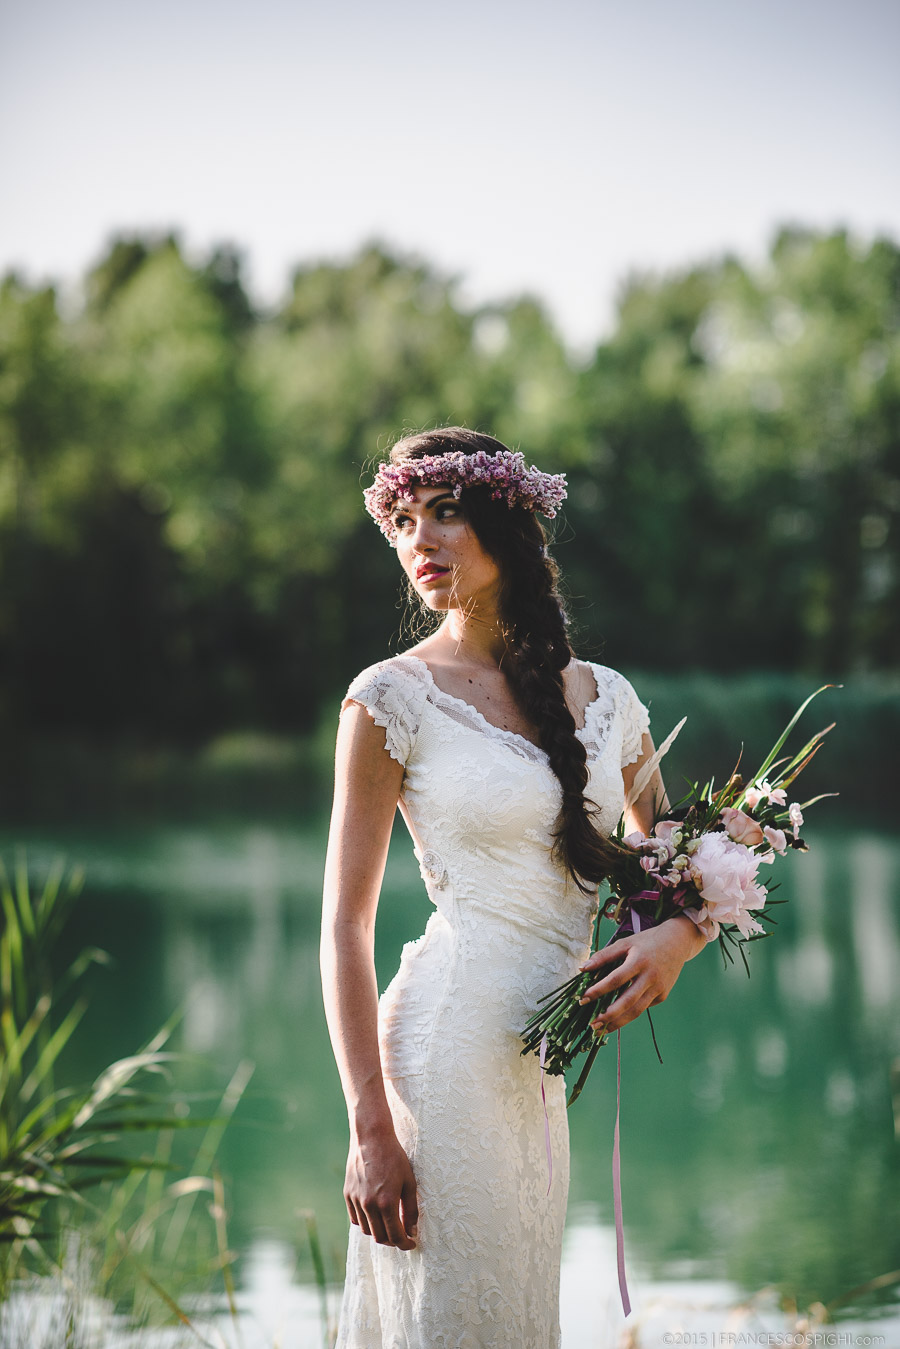 tuscany bohemian inspiration weddingstyled shoot 1023